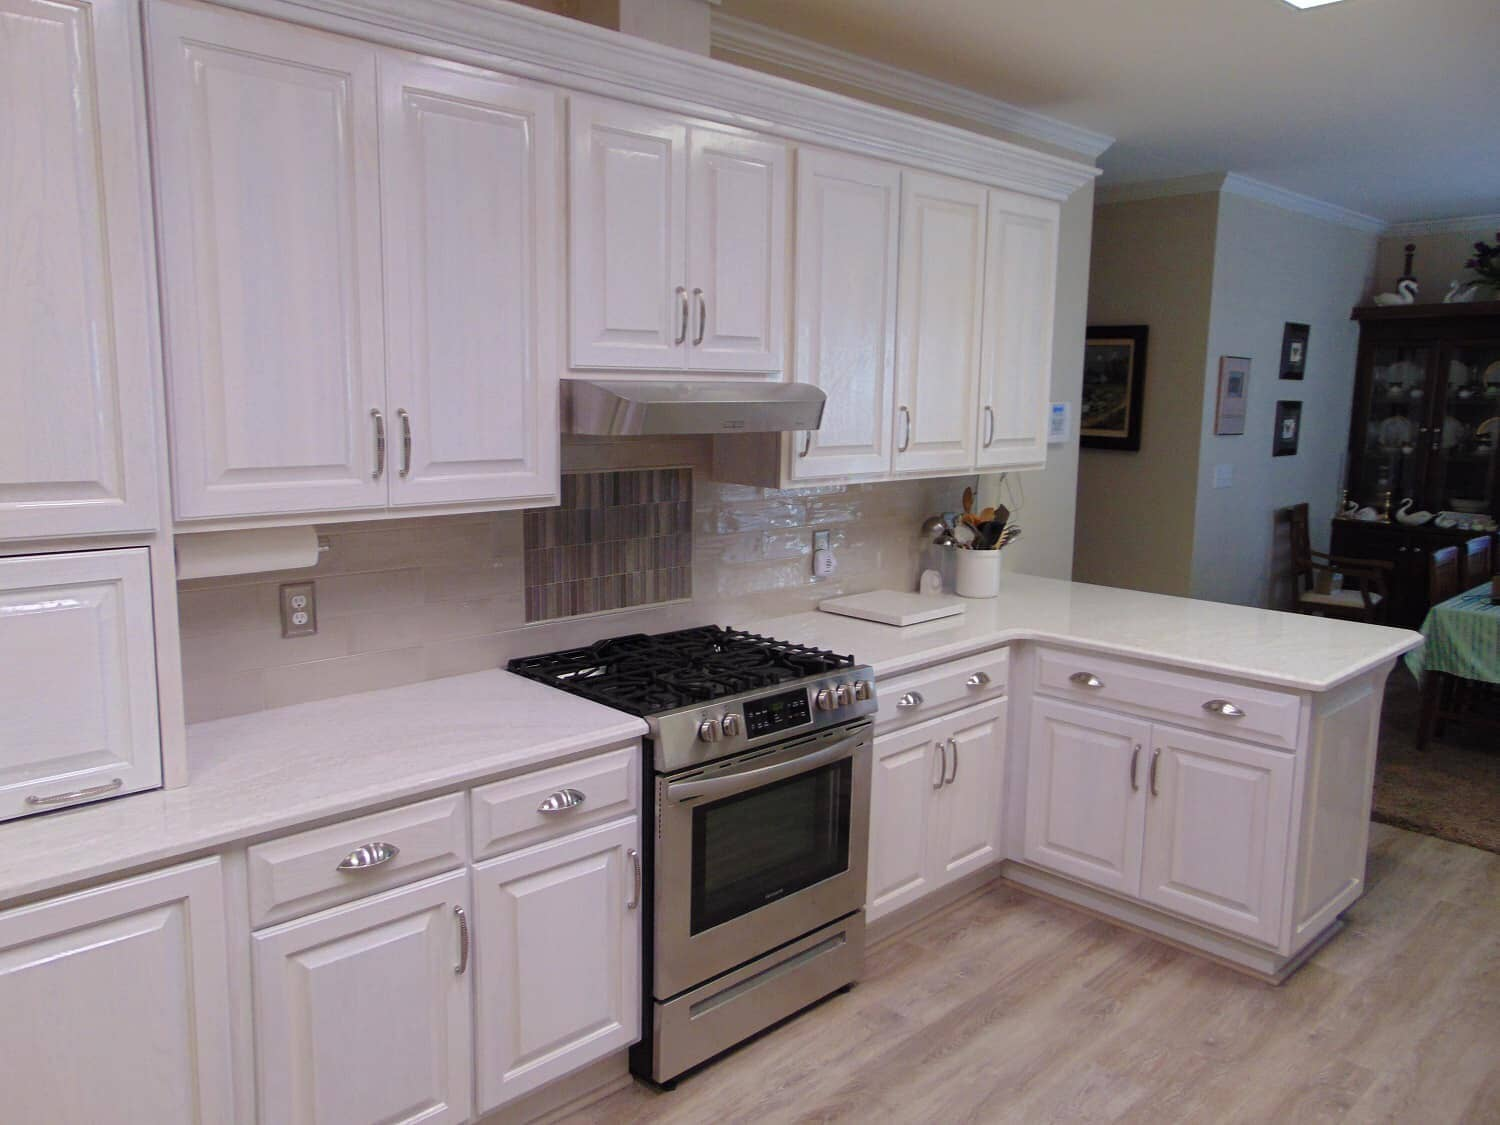 Kitchen renovations from Richie Ballance Flooring & Tile in the Wilson, NC area